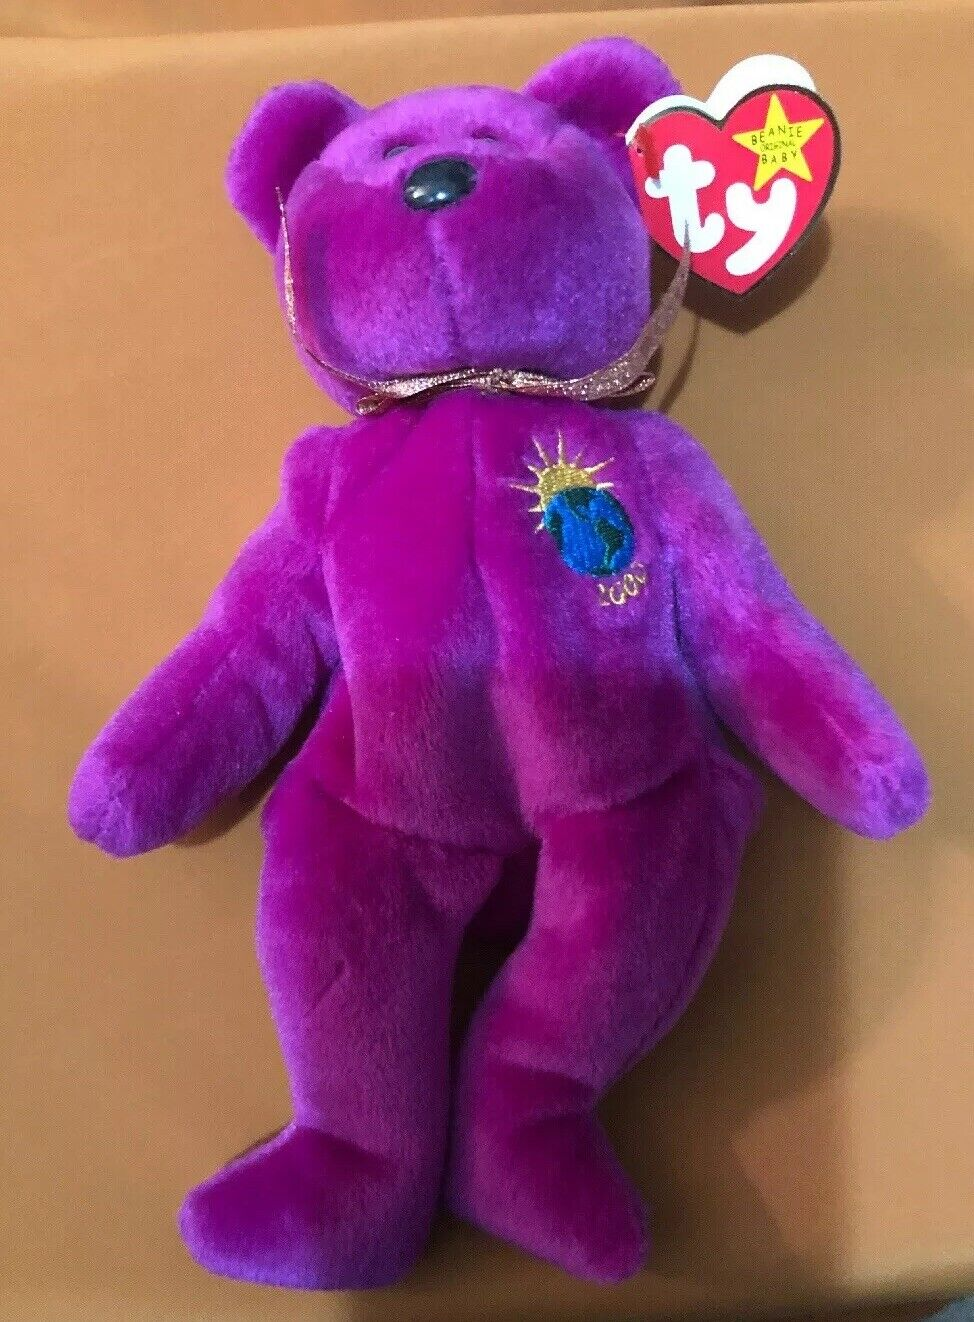 TY Beanie Baby Baby Baby - MILLENNIUM the Bear (8.5 inch) - MWMTs Stuffed Animal Toy f02ef0